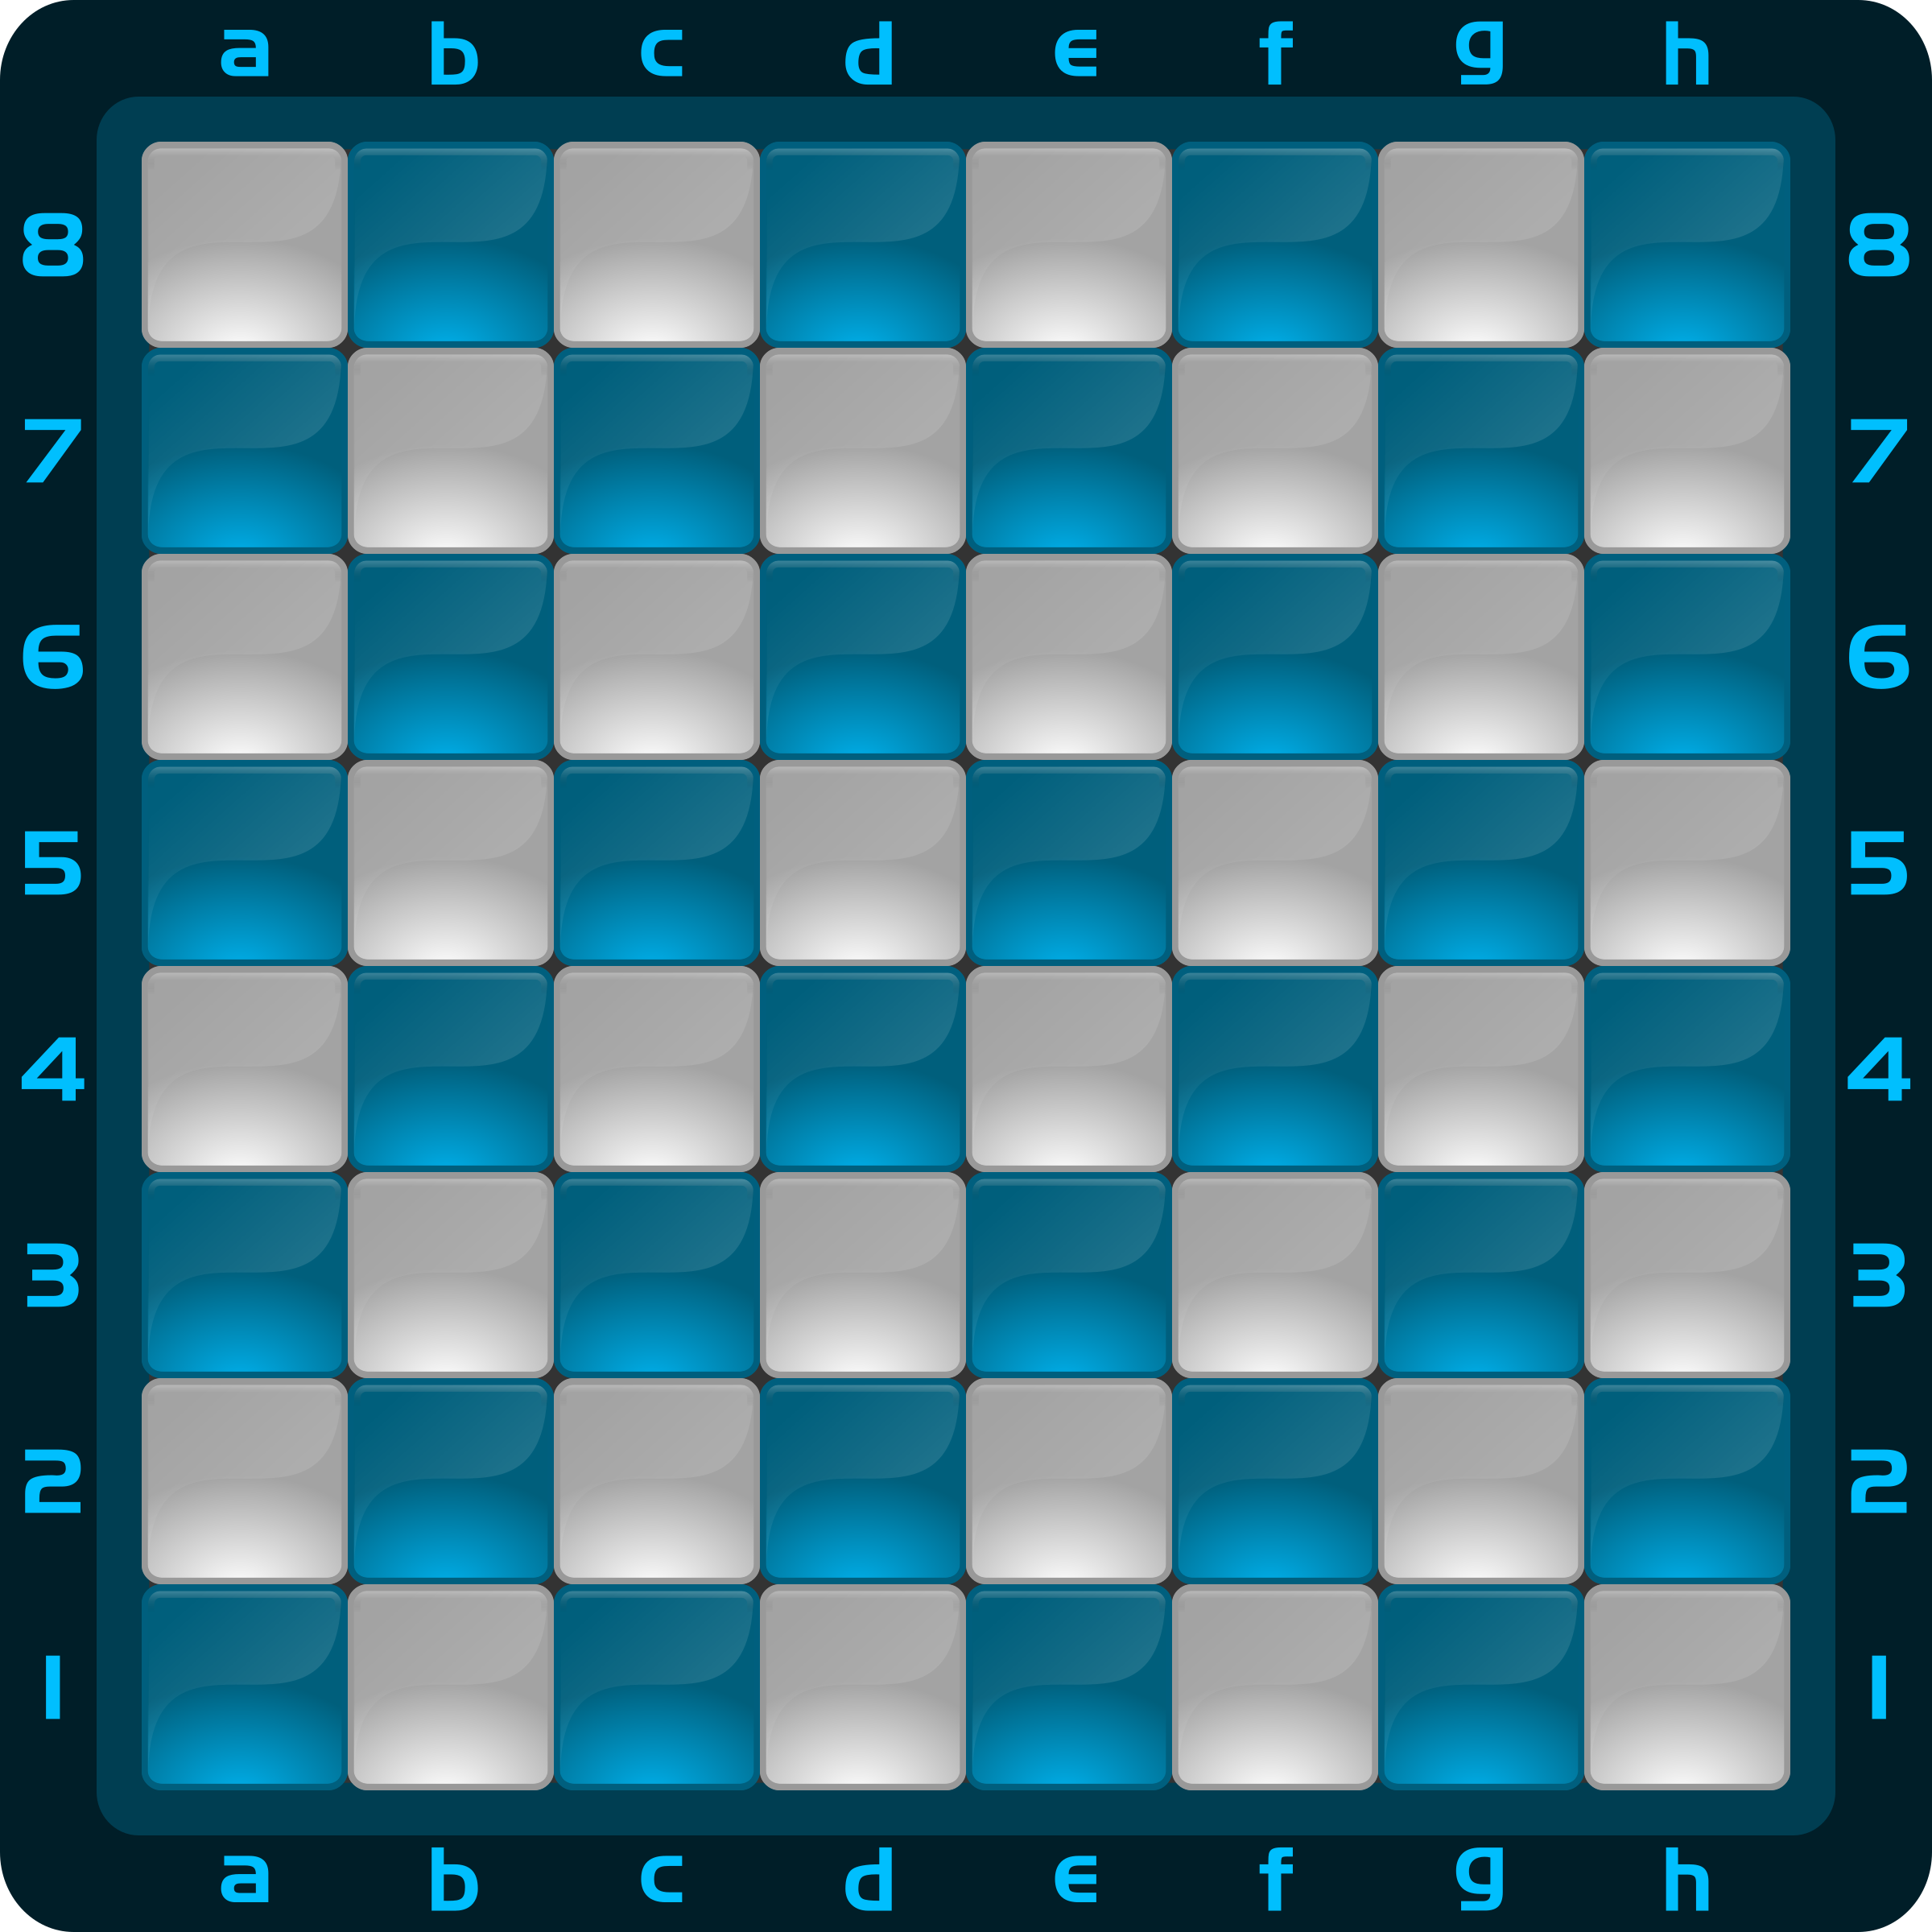 Chessboard Glossy Squares - Light Blue by DG-RA